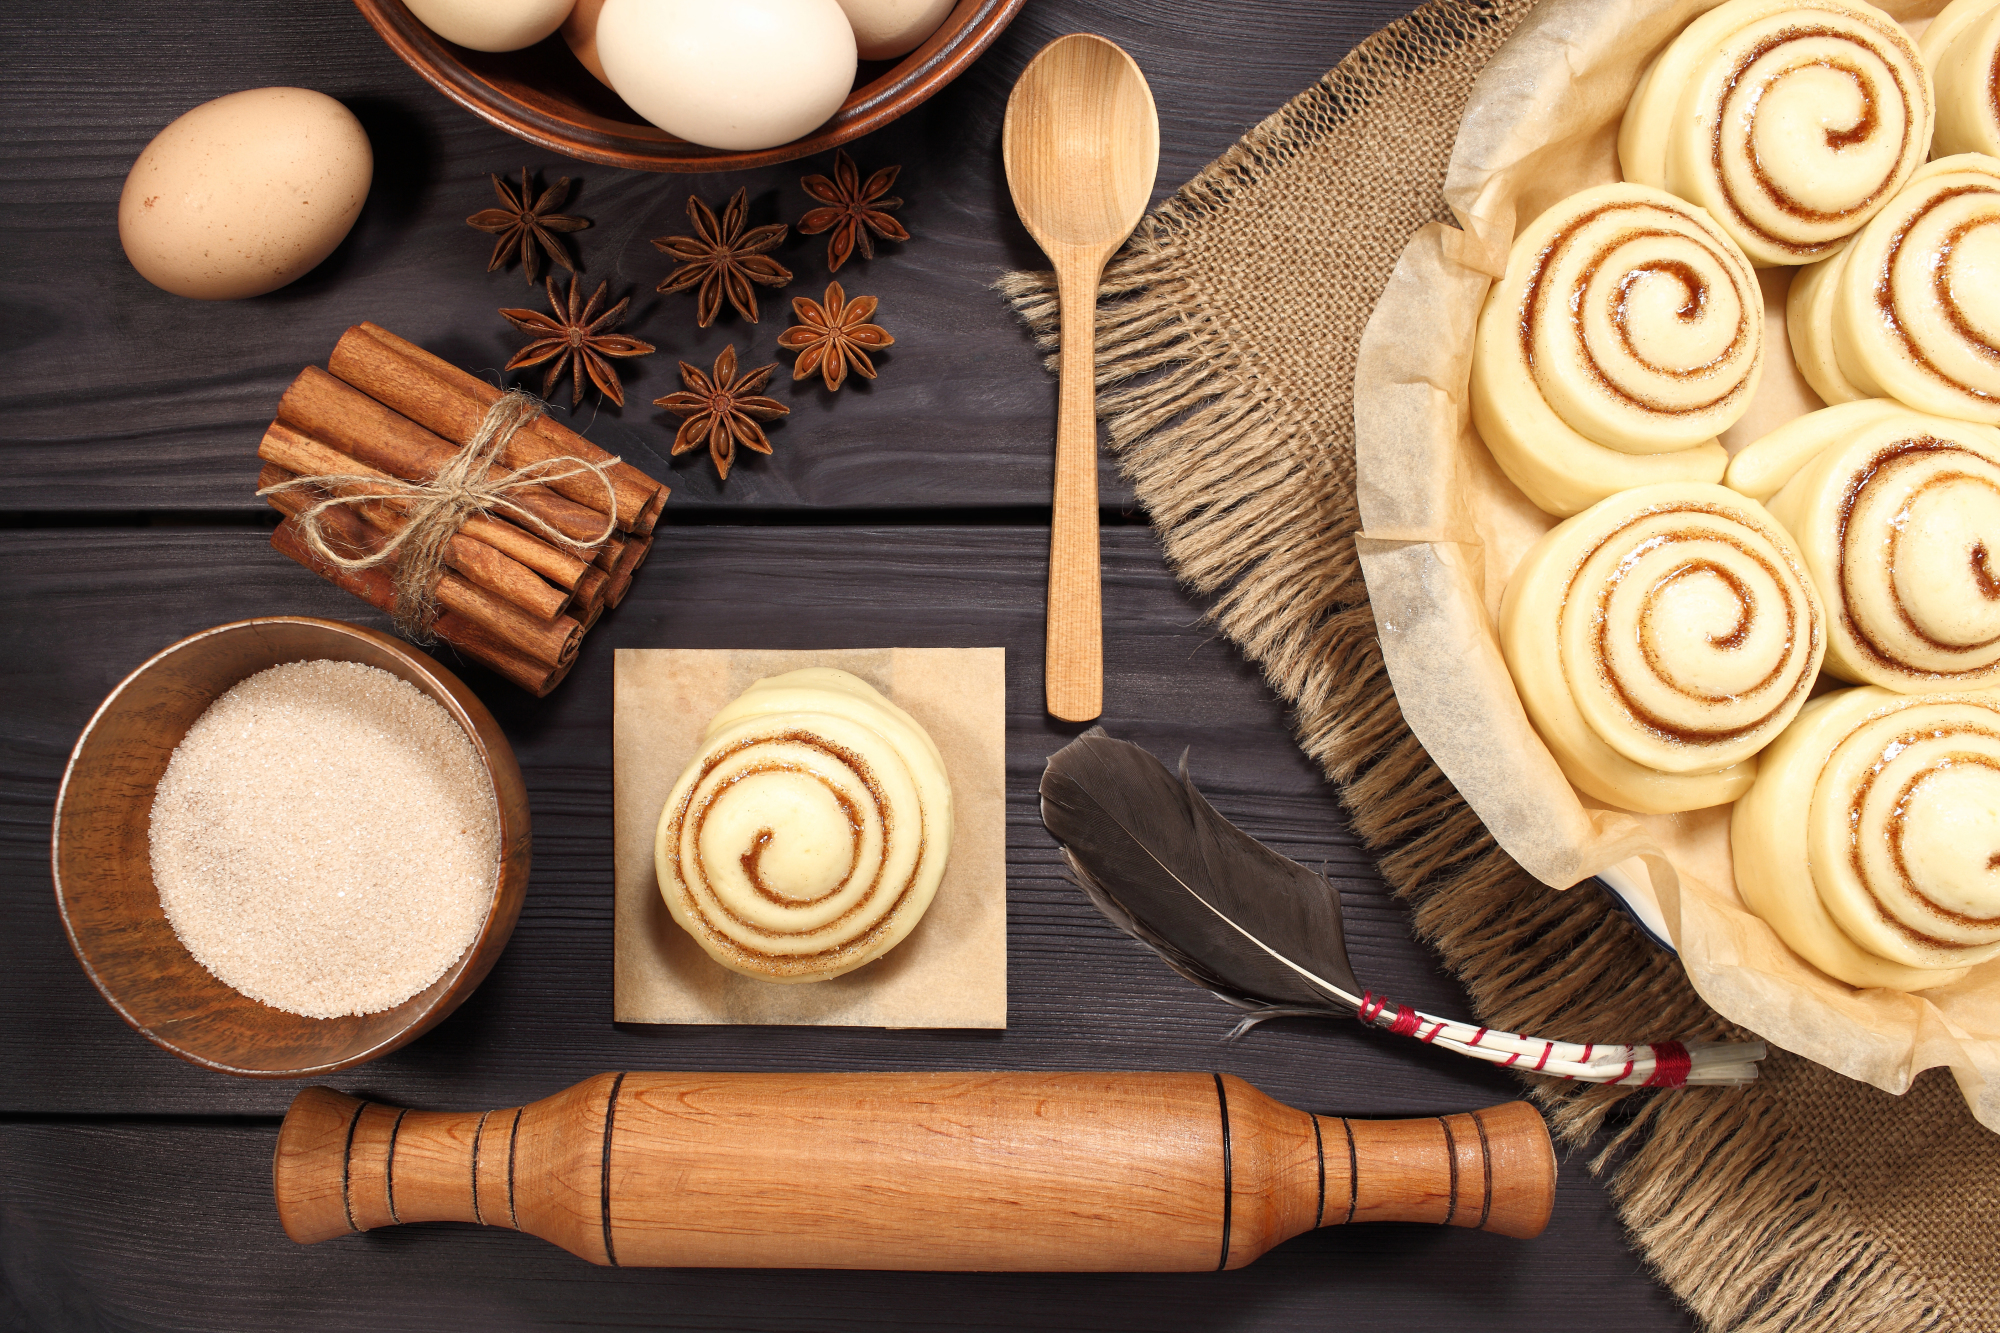 Set of 11 photos - raw buns: cinnamon rolls prepared for baking on a background of rustic table example image 6